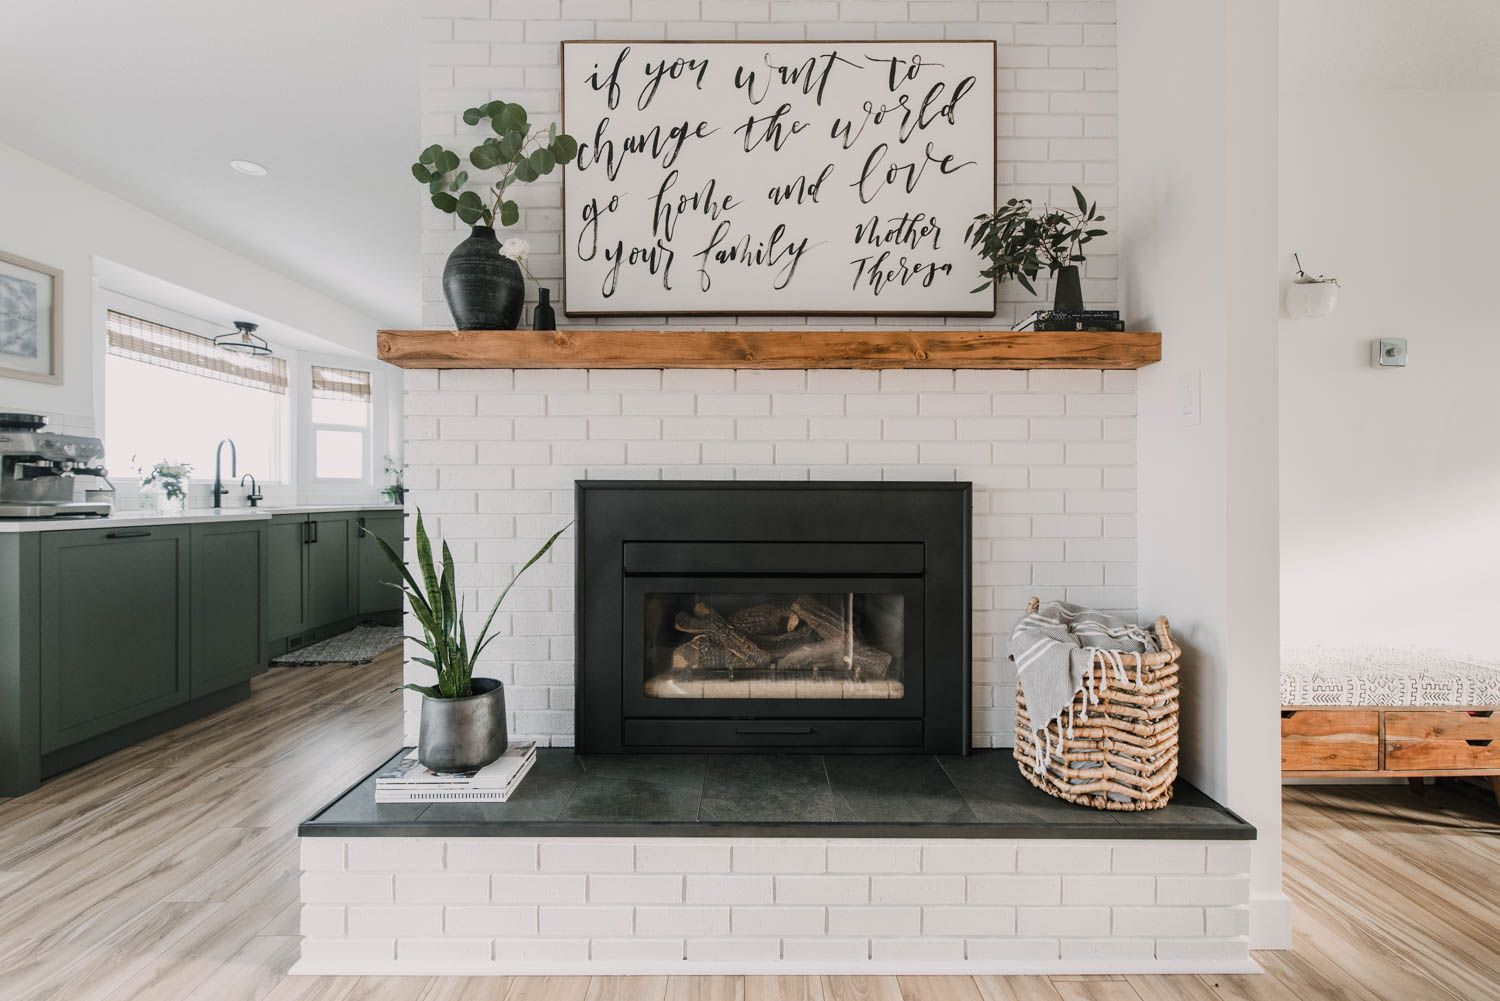 DIY Brick Fireplace Makeover in 2020 (With images) Wood